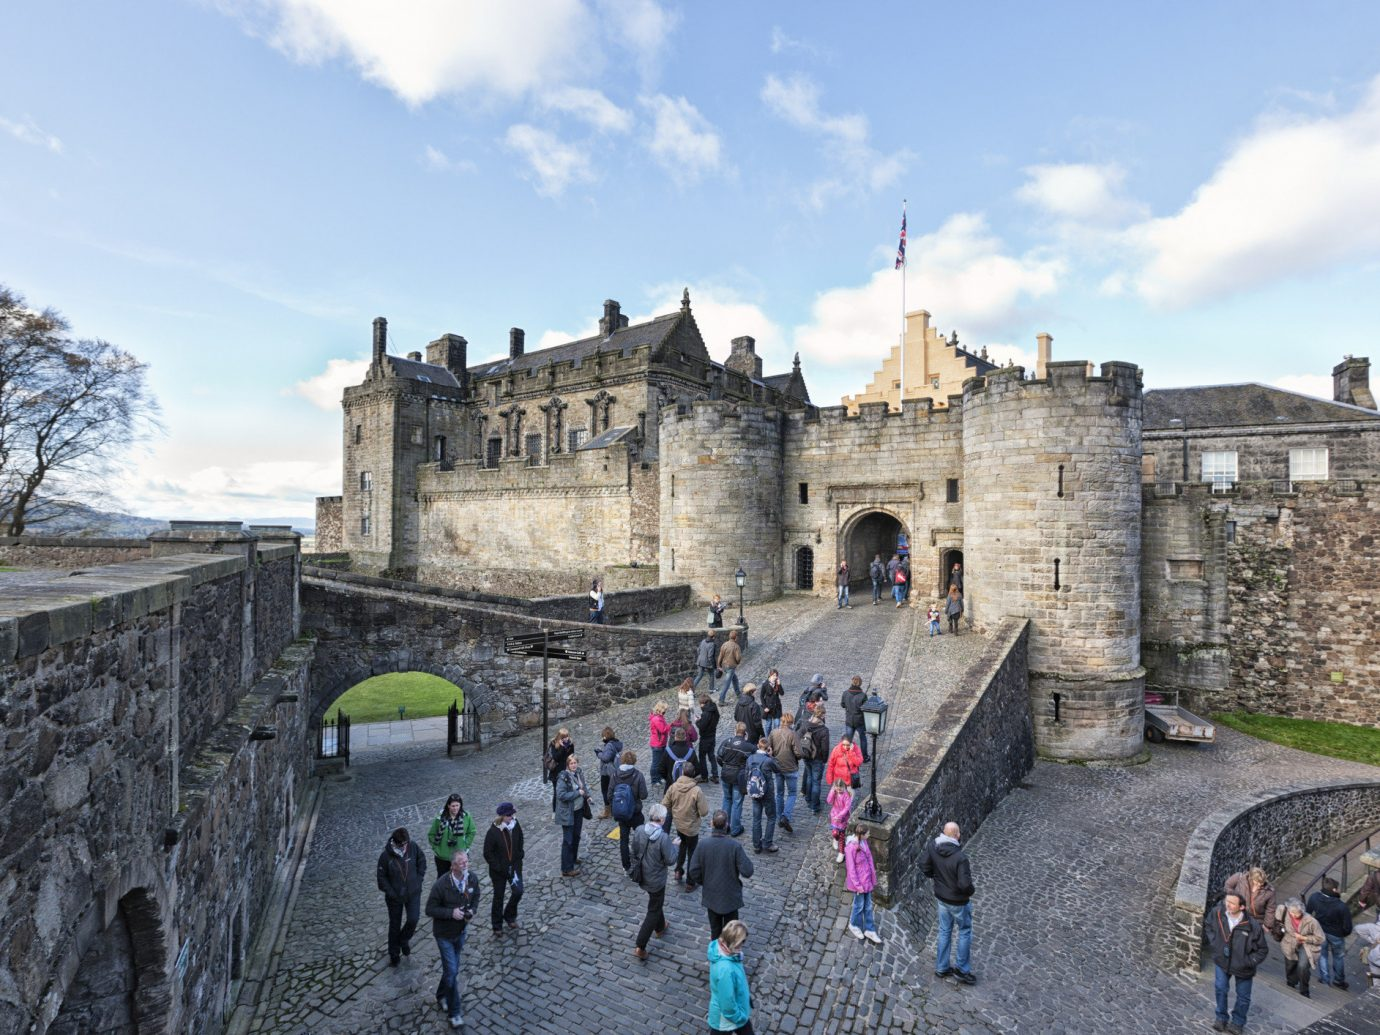 Landmarks Offbeat sky outdoor castle wall building fortification château historic site medieval architecture people group history tours tourist attraction tourism middle ages palace stone several crowd